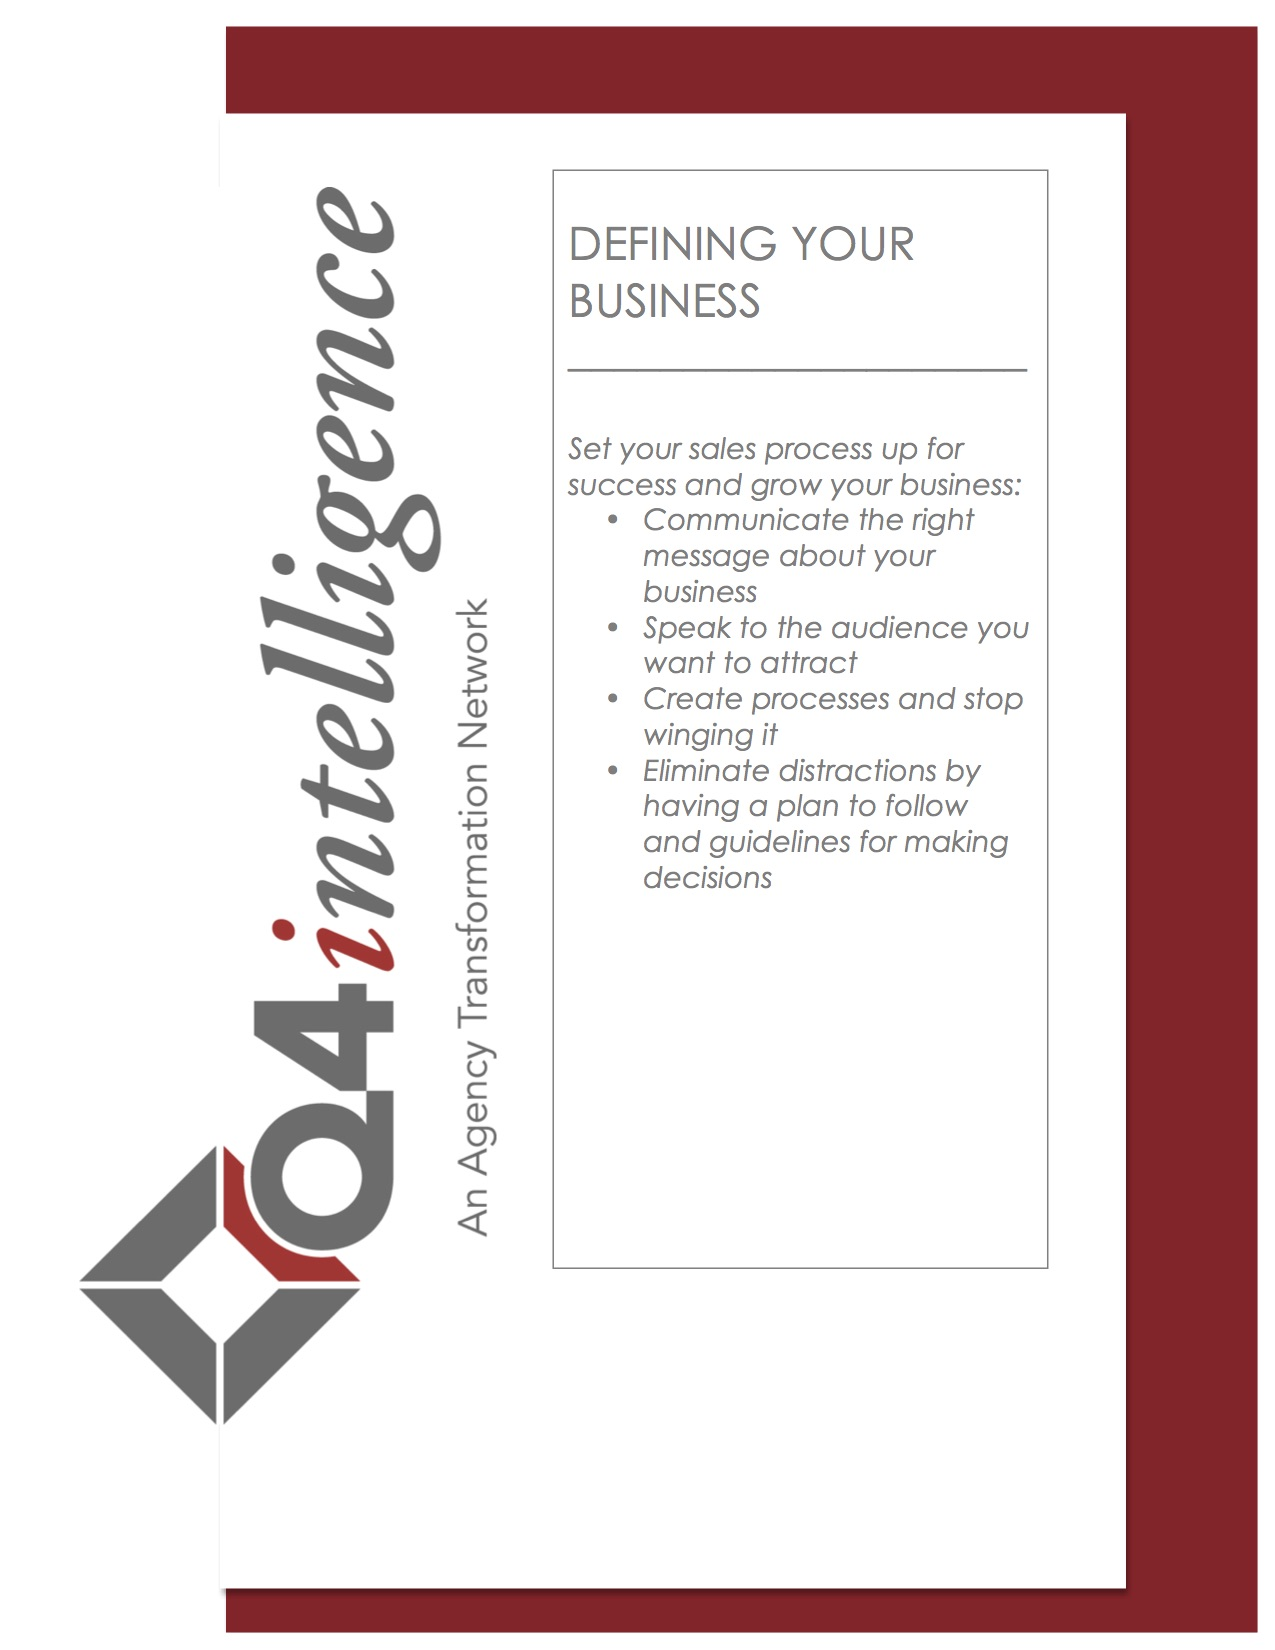 Defining Your Business Workbook Q4intelligence